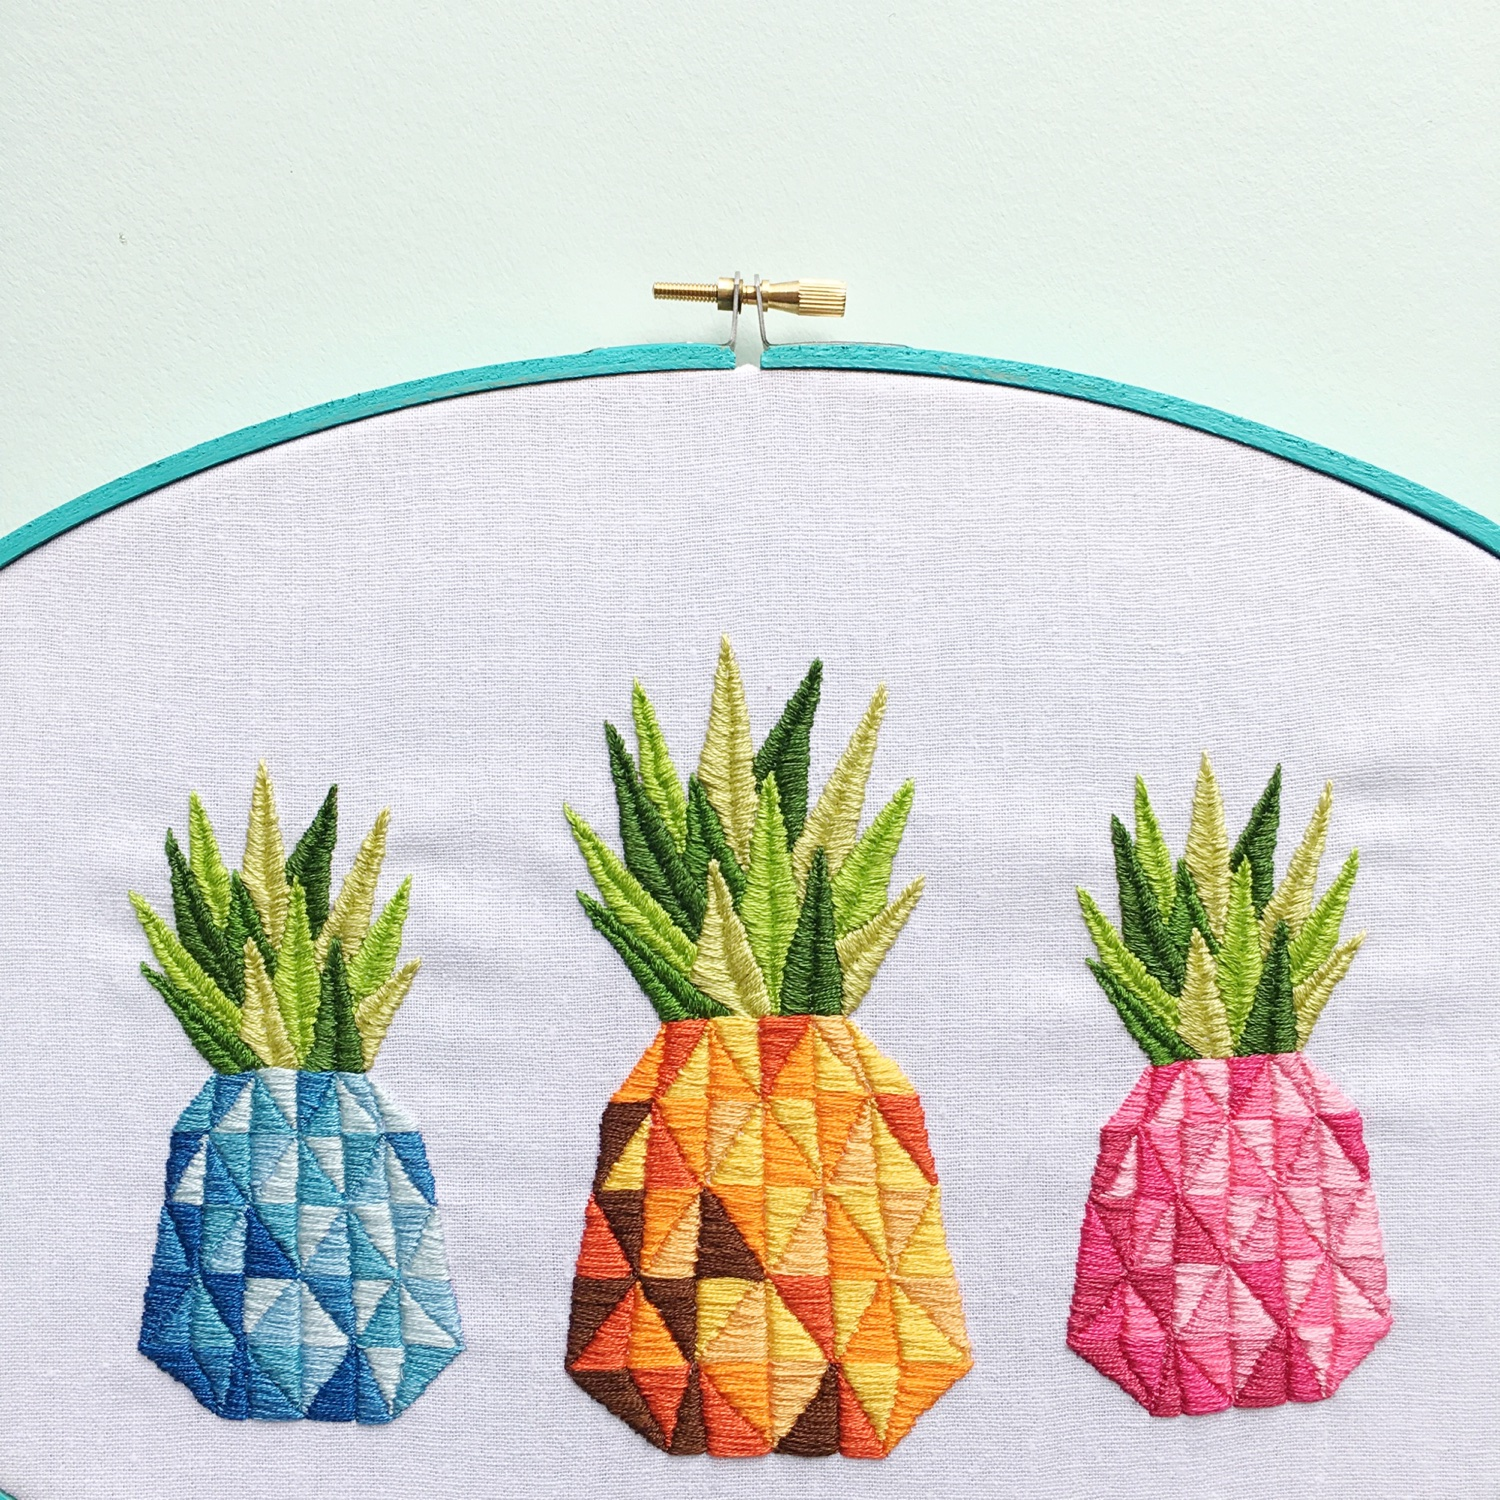 Pineapple embroidery | Hello! Hooray!